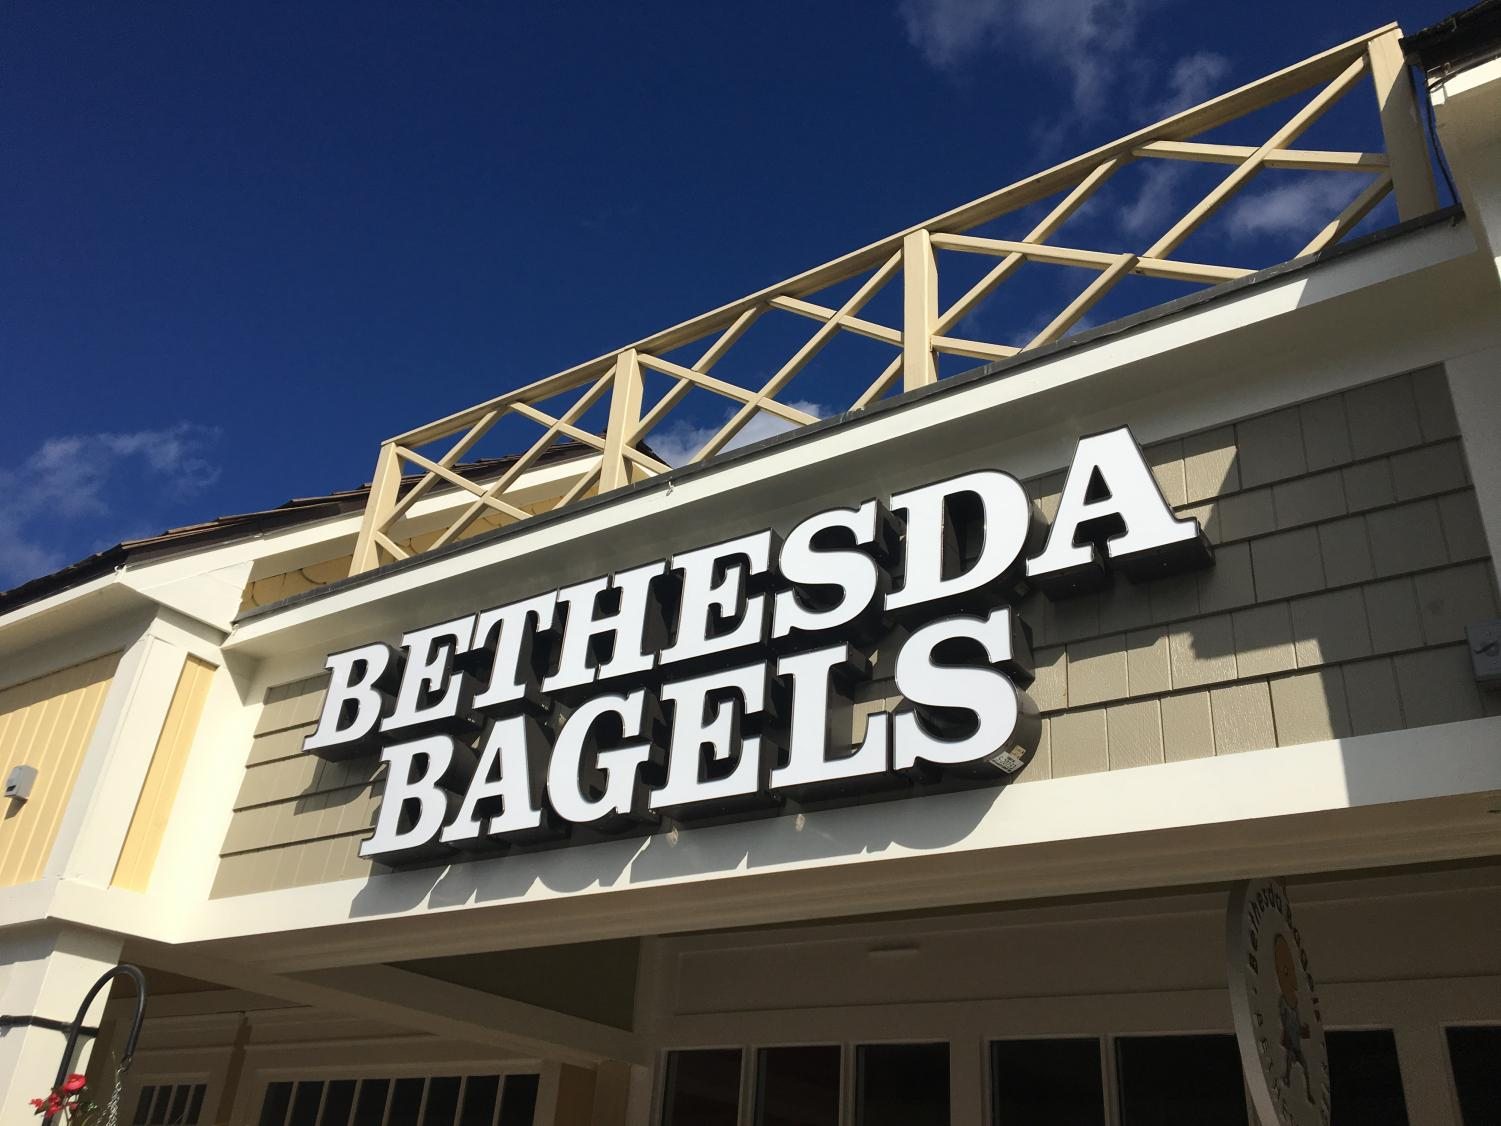 The exterior of the new Bethesda Bagels in Wildwood which is located on Old Georgetown Road. First opening in 1982, Bethesda Bagels remains a popular breakfast and lunch spot.